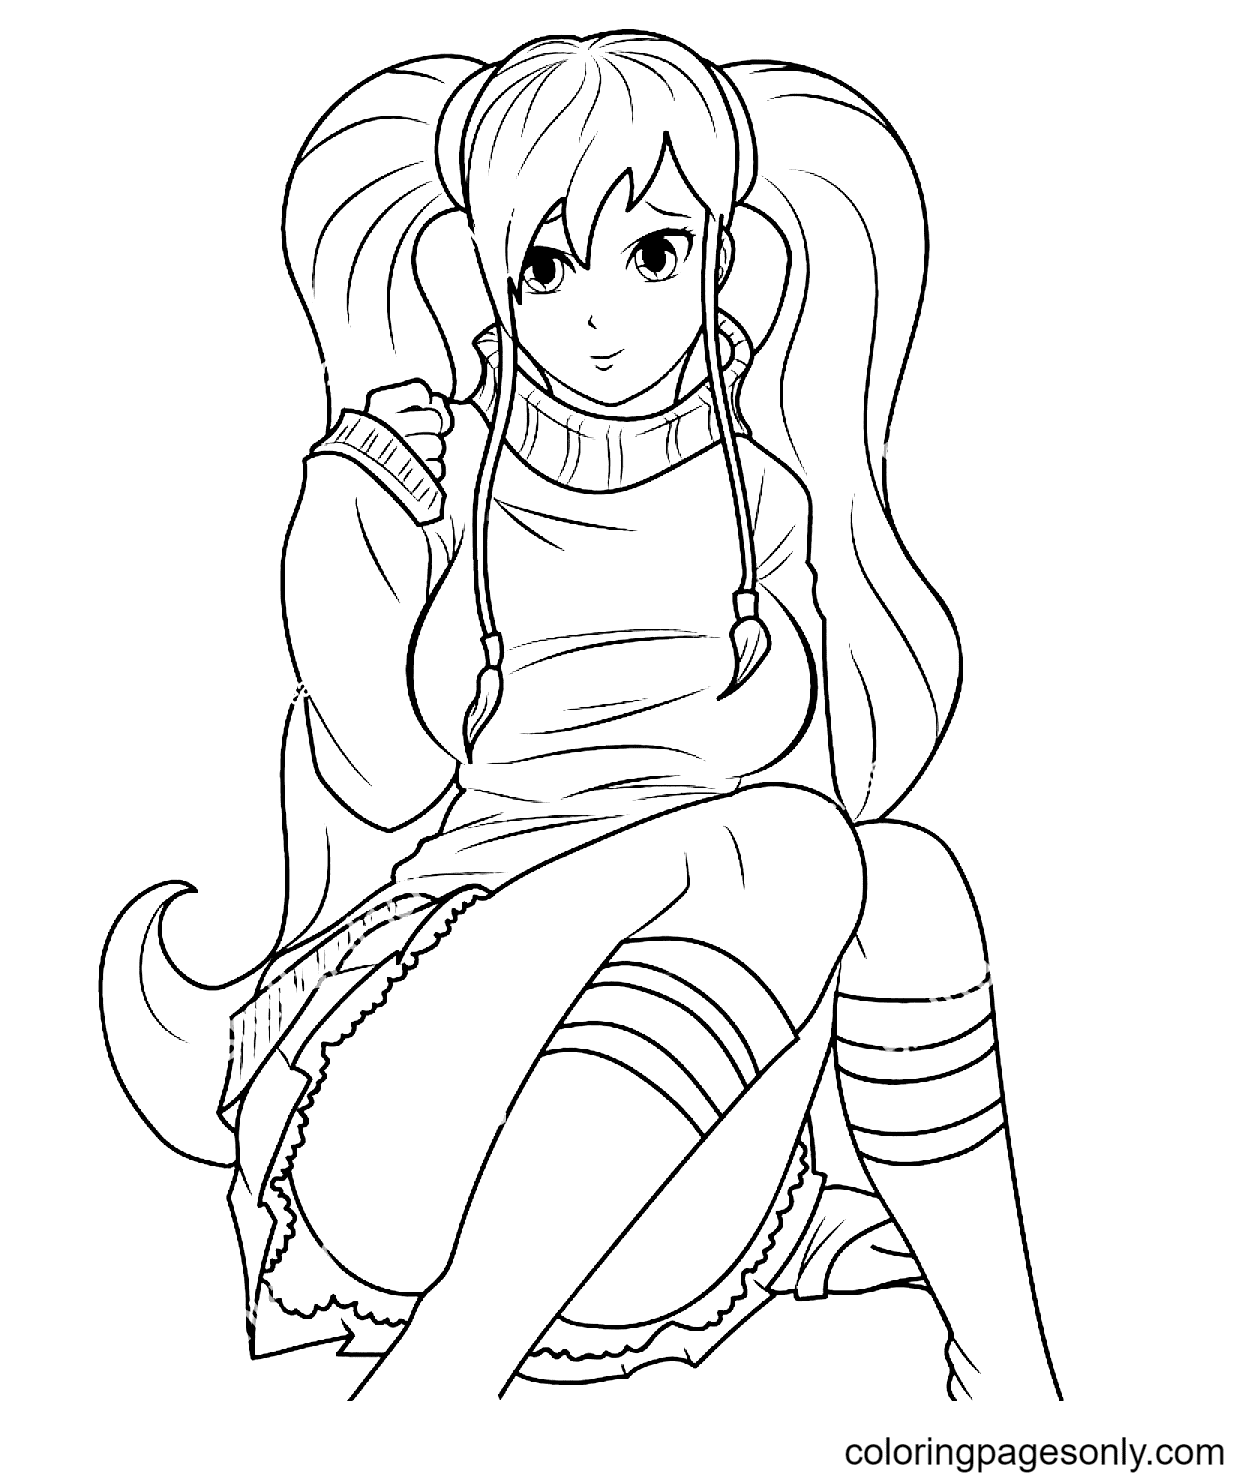 Cute Anime Girl with a Nice Haircut Sitting Coloring Page